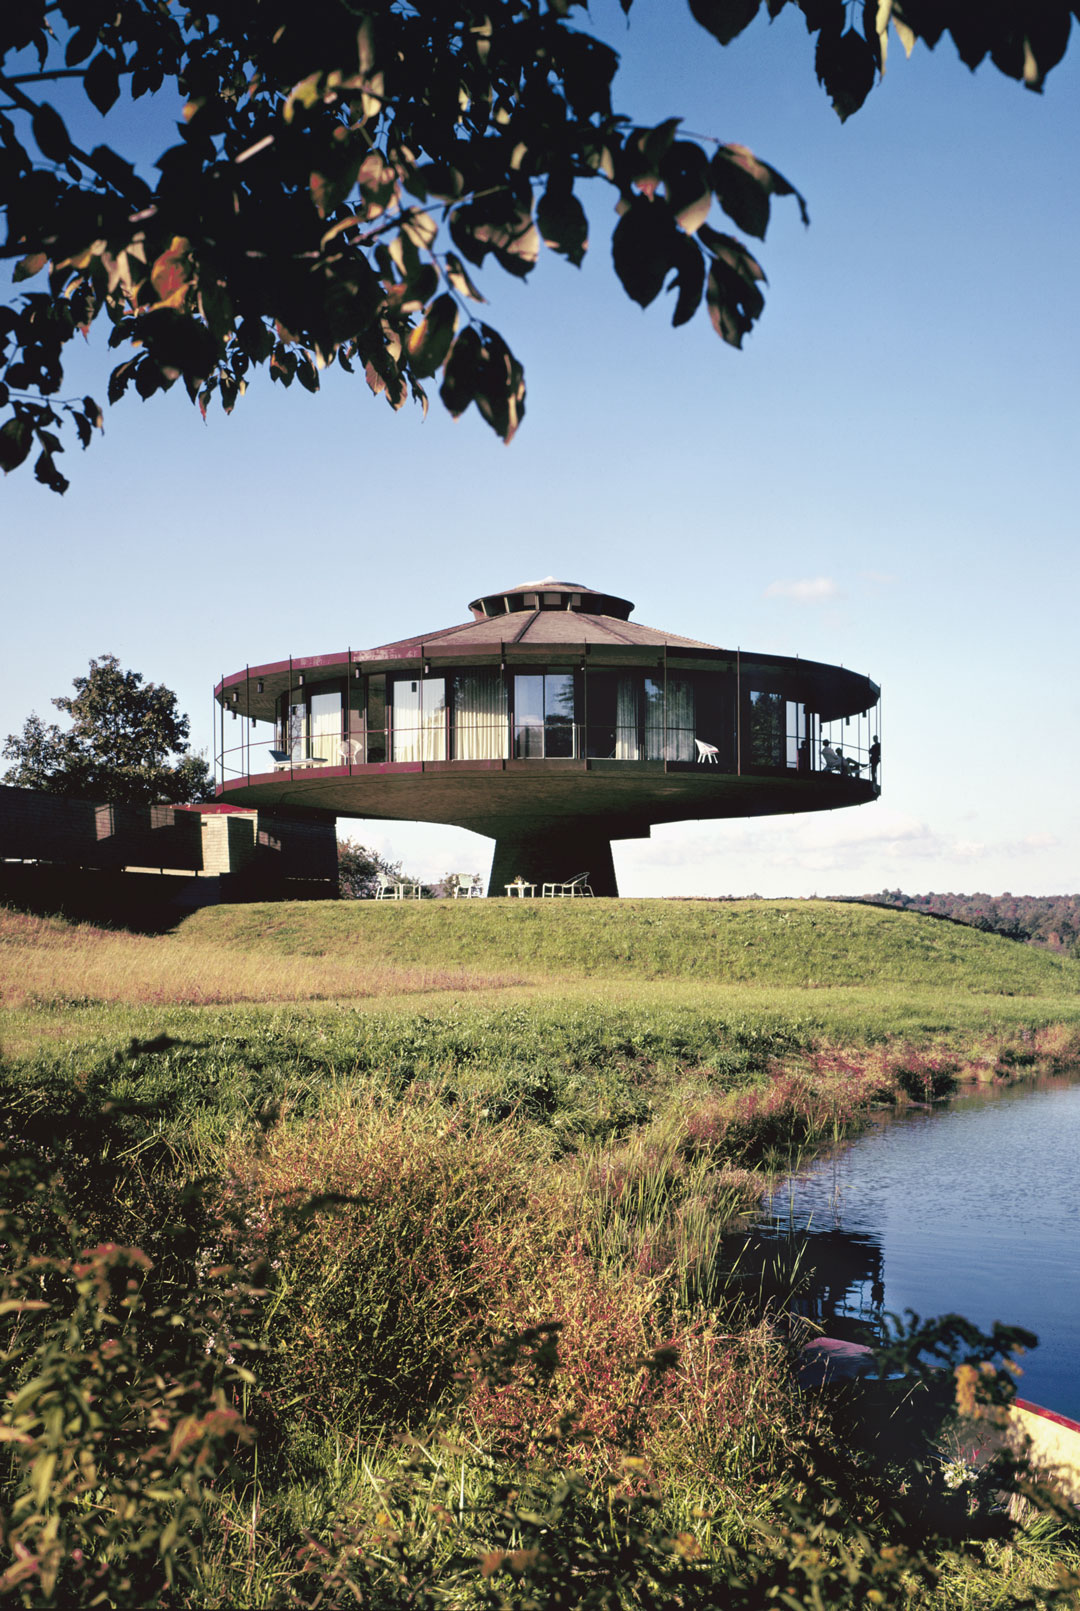 Round House, Richard Foster, Wilton, Connecticut, (US), 1968